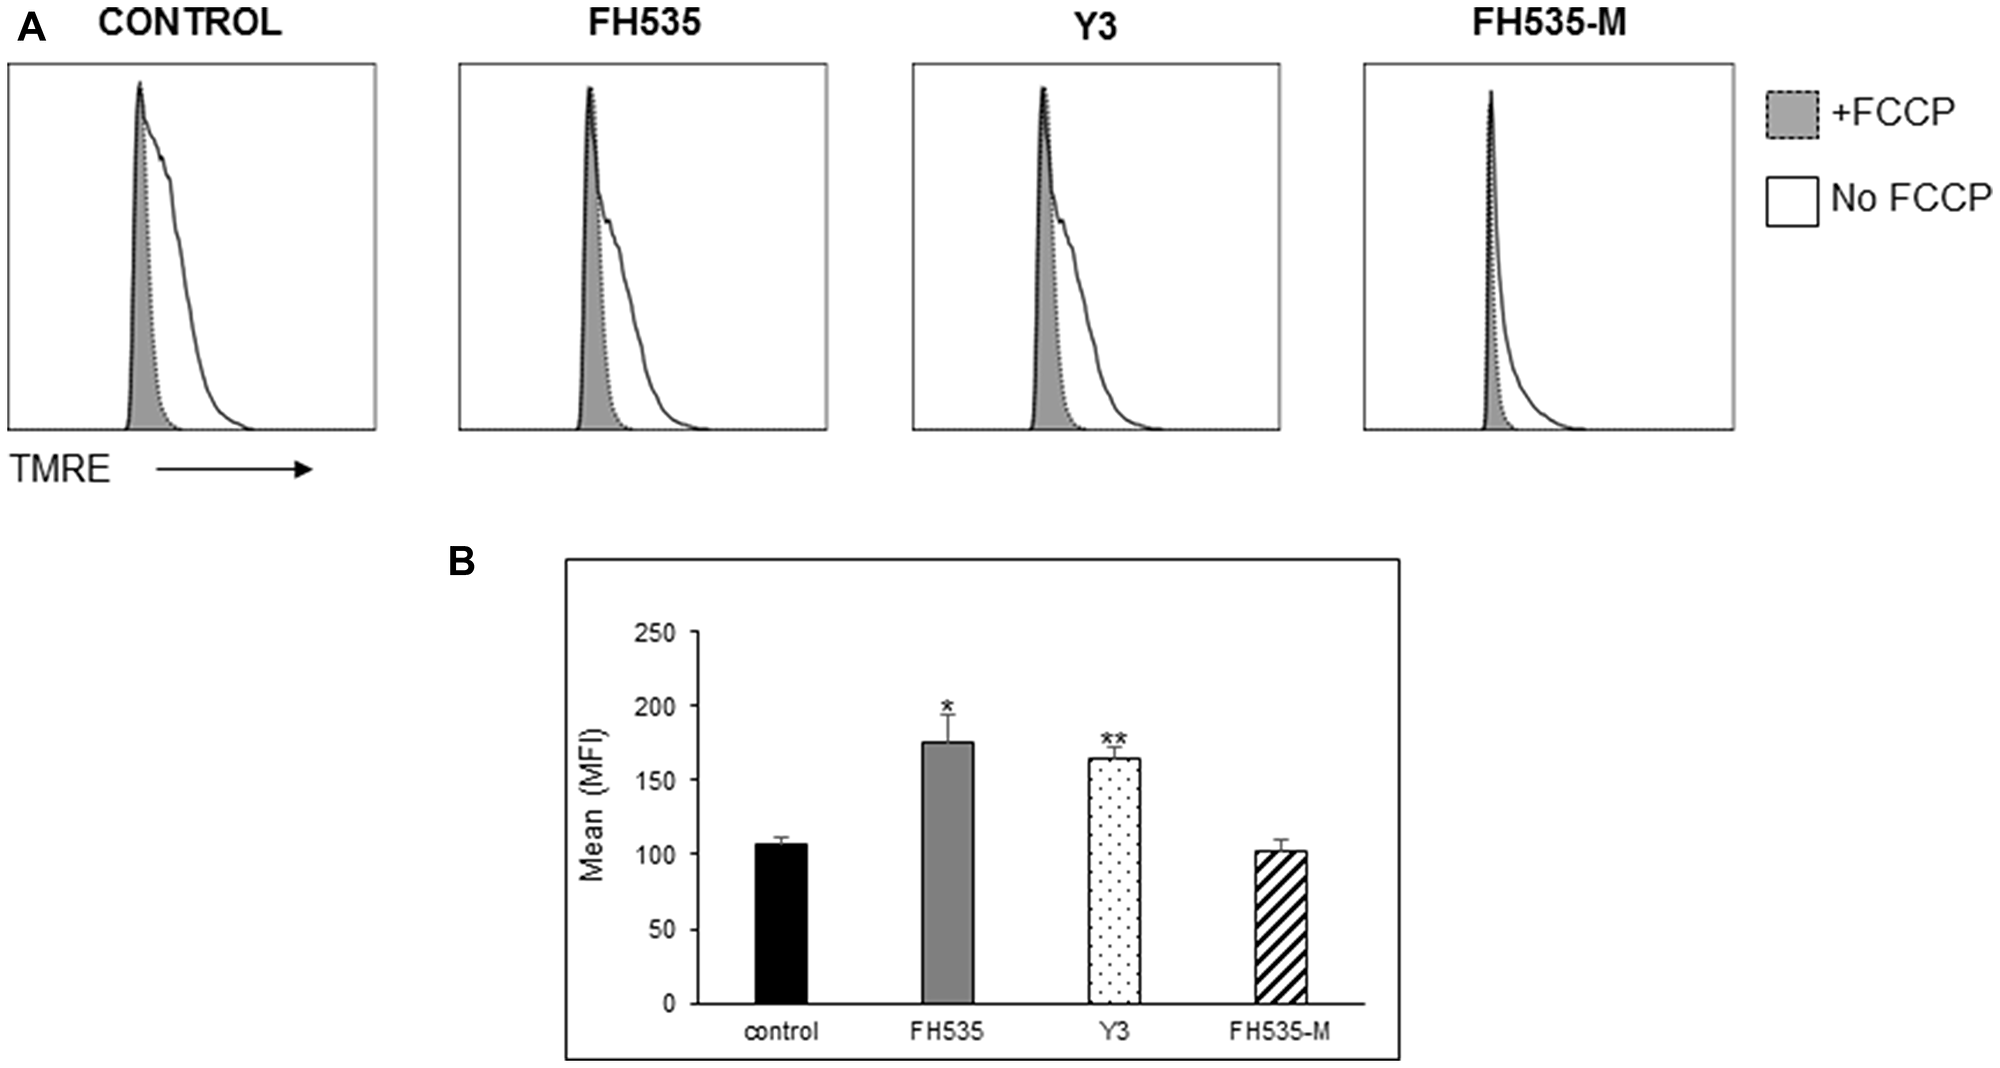 Effect of FH535 methylated compound on mitochondrial membrane potential (Δψm).